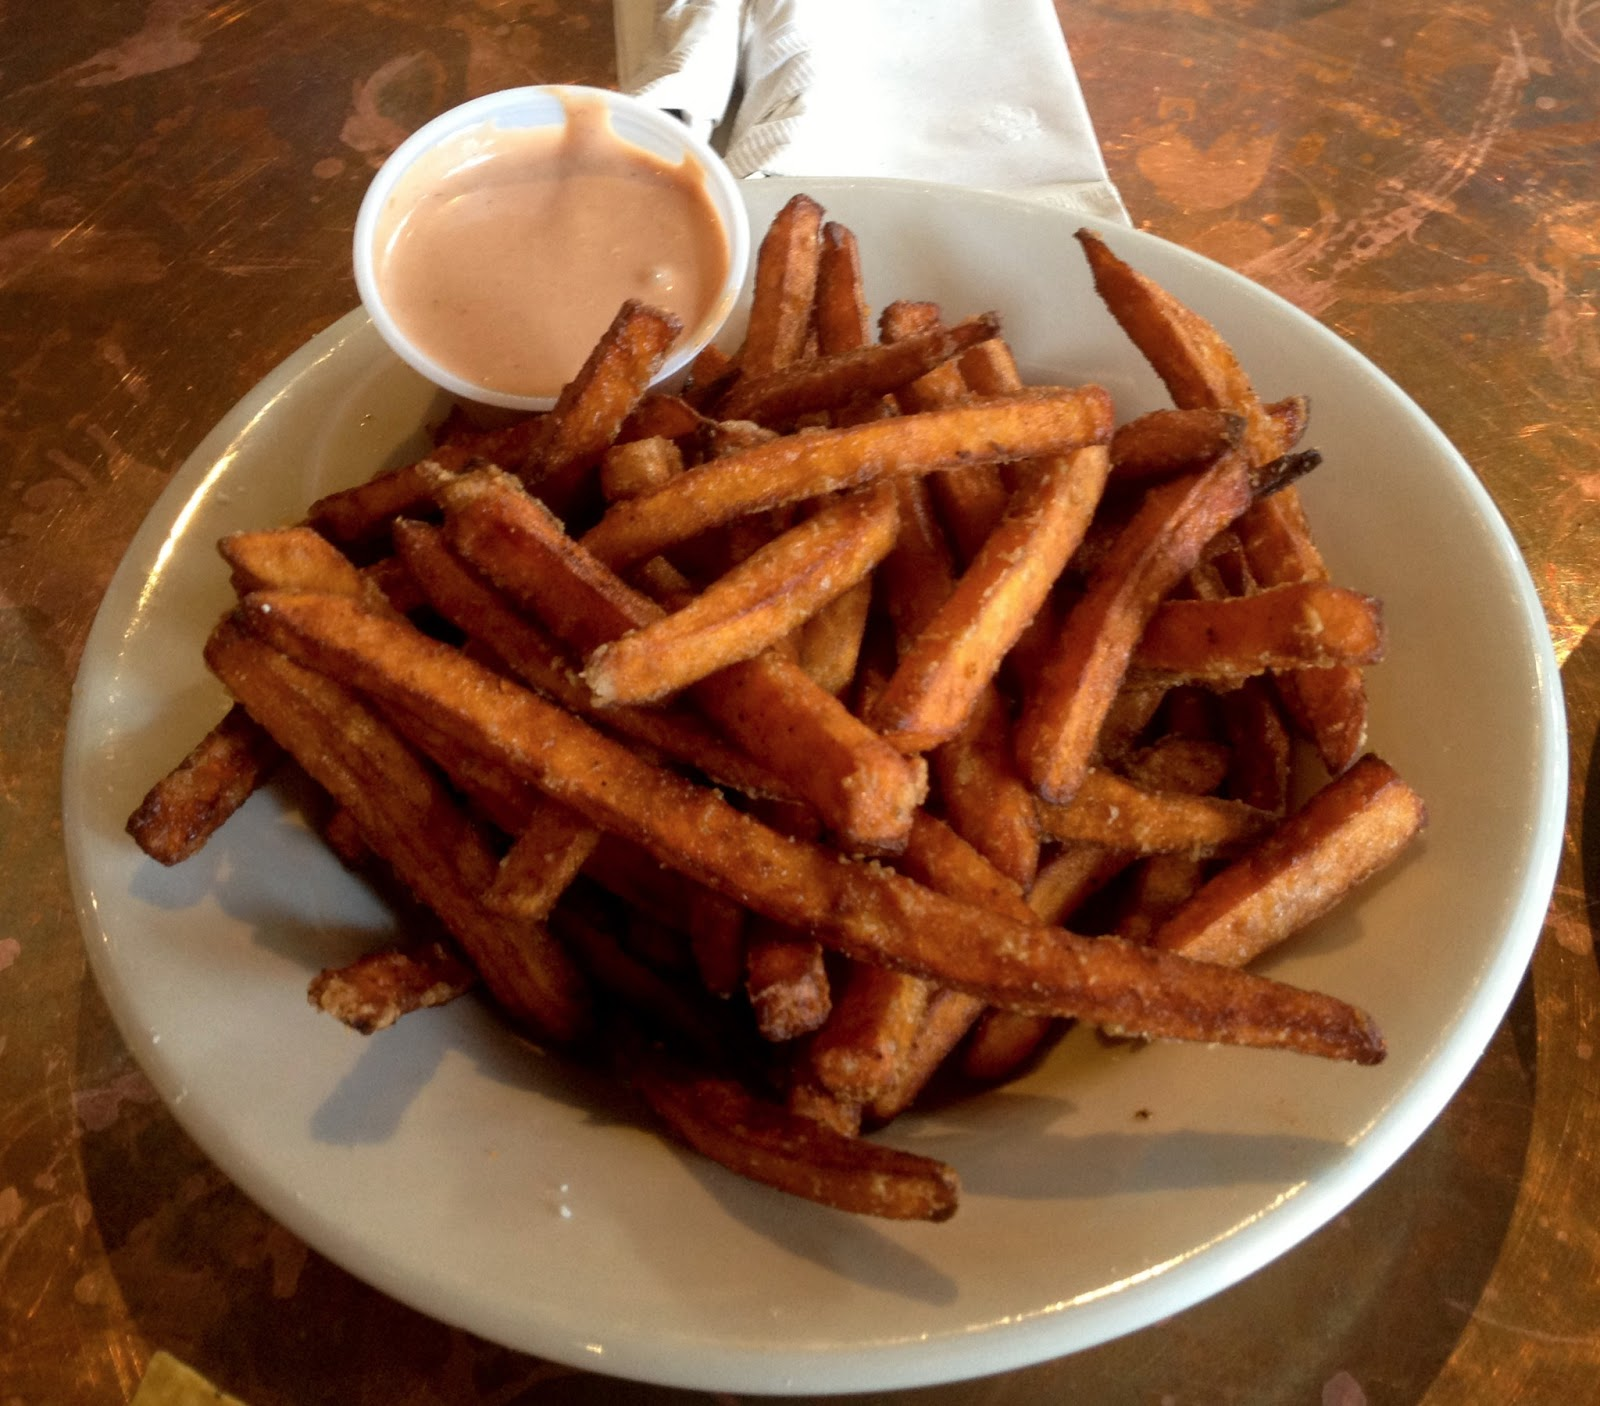 food blog, food blogger, food reviews, utah food review, utah food blogger, gurus, gurus sweet potato fries, gurus fries